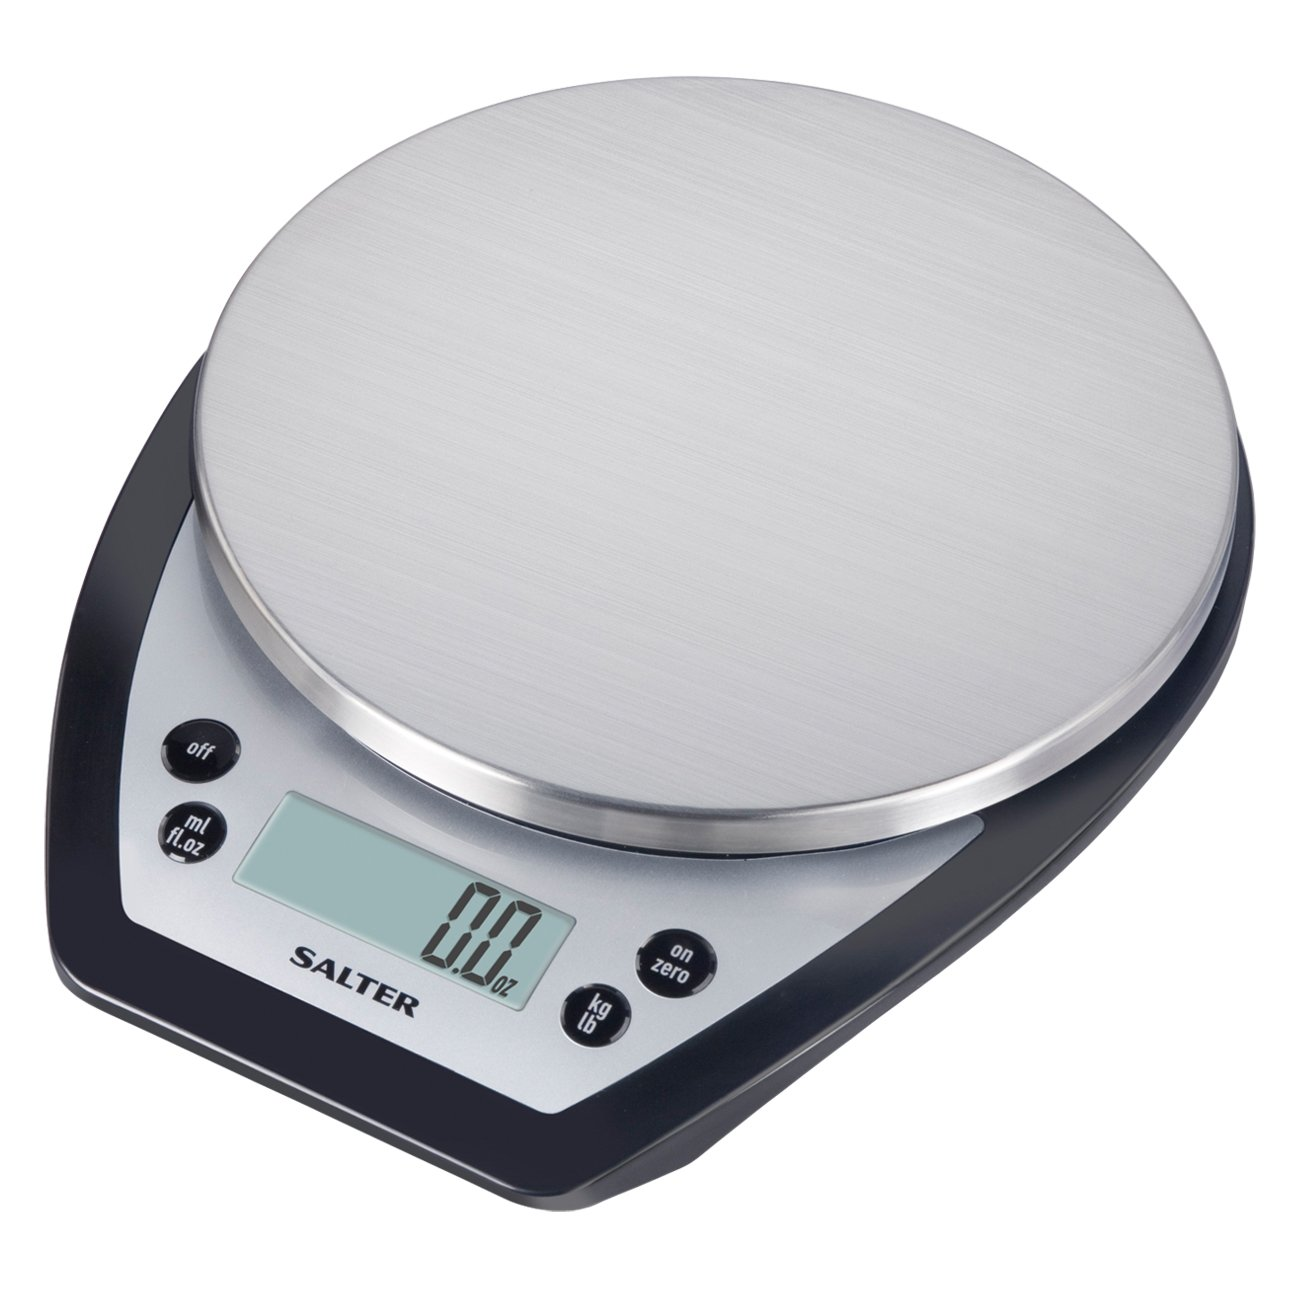 Salter 1020BKSS Aquatronic Digital Kitchen Scale